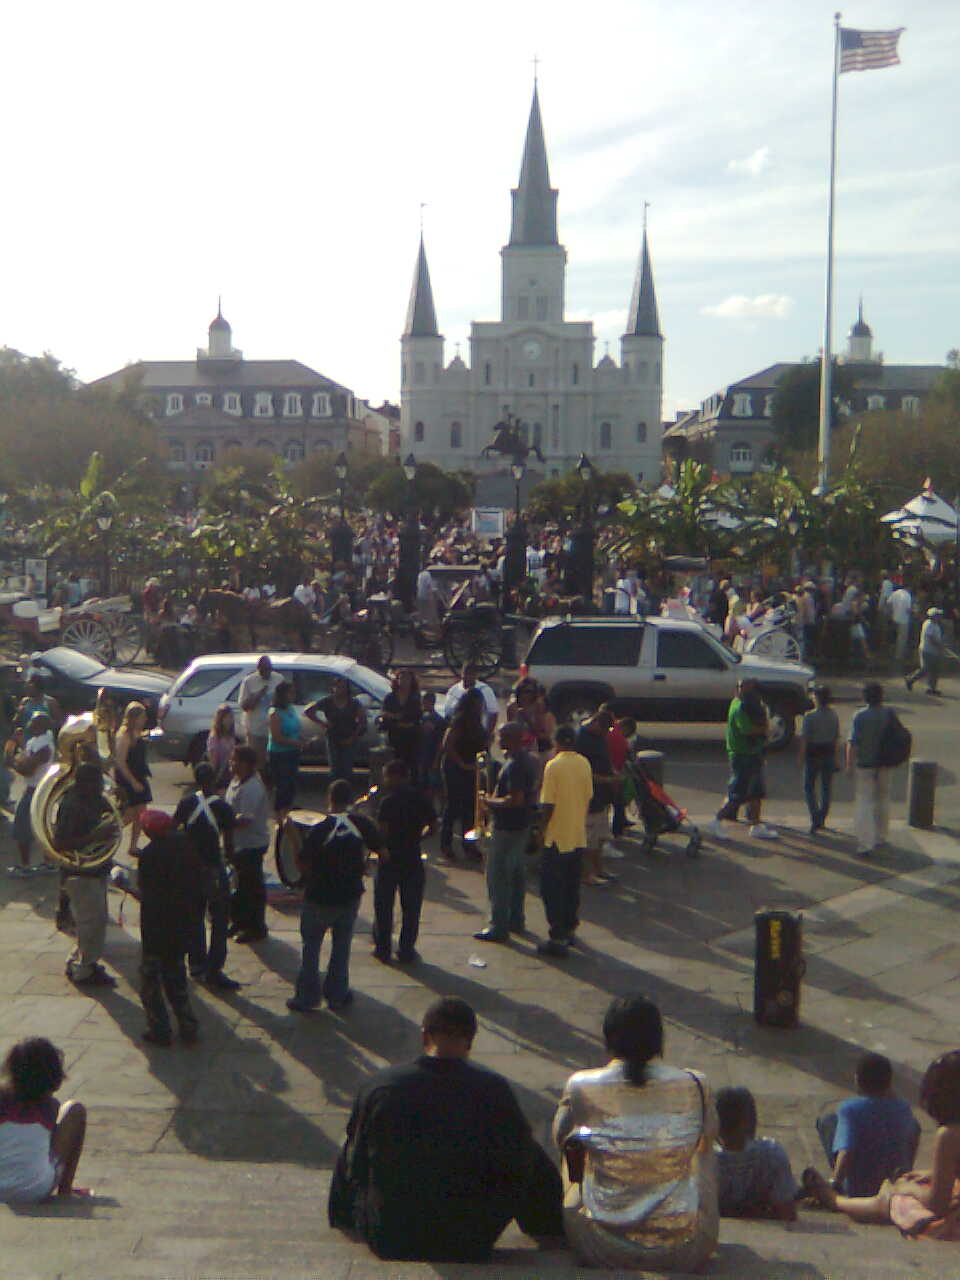 Crowds at French Quarter Fest